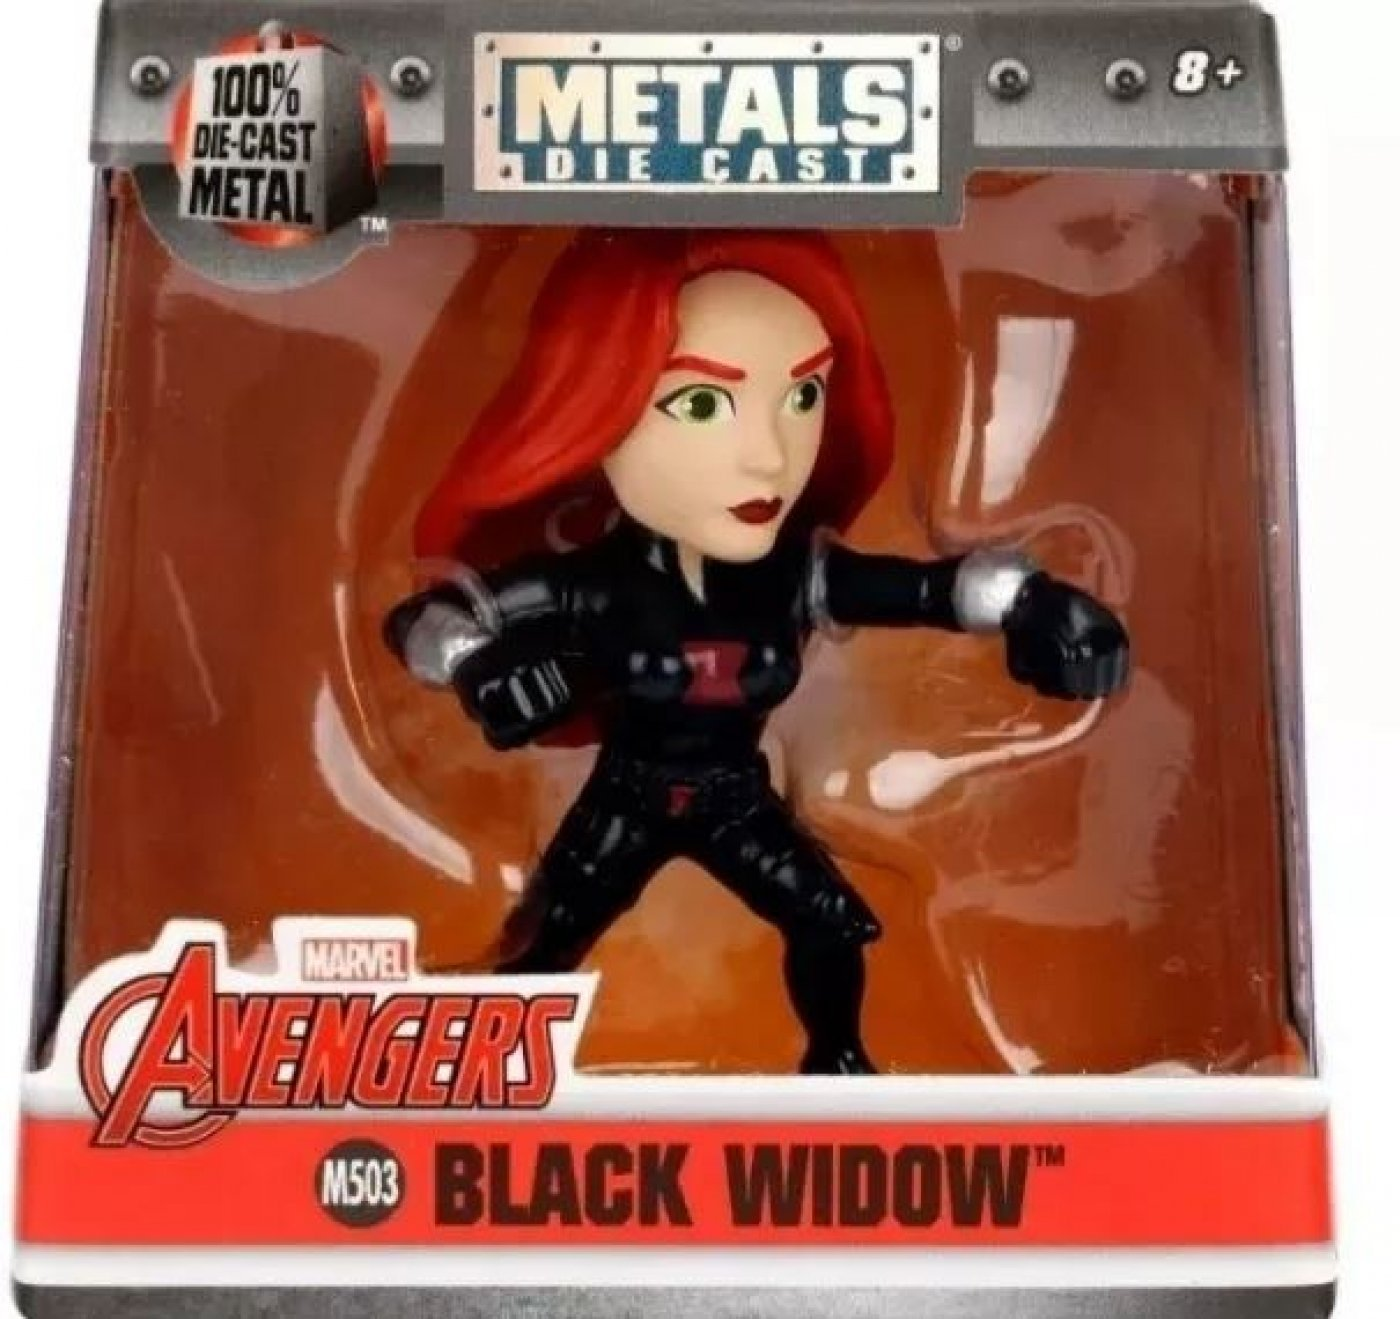 Avengers Black Widow Metals